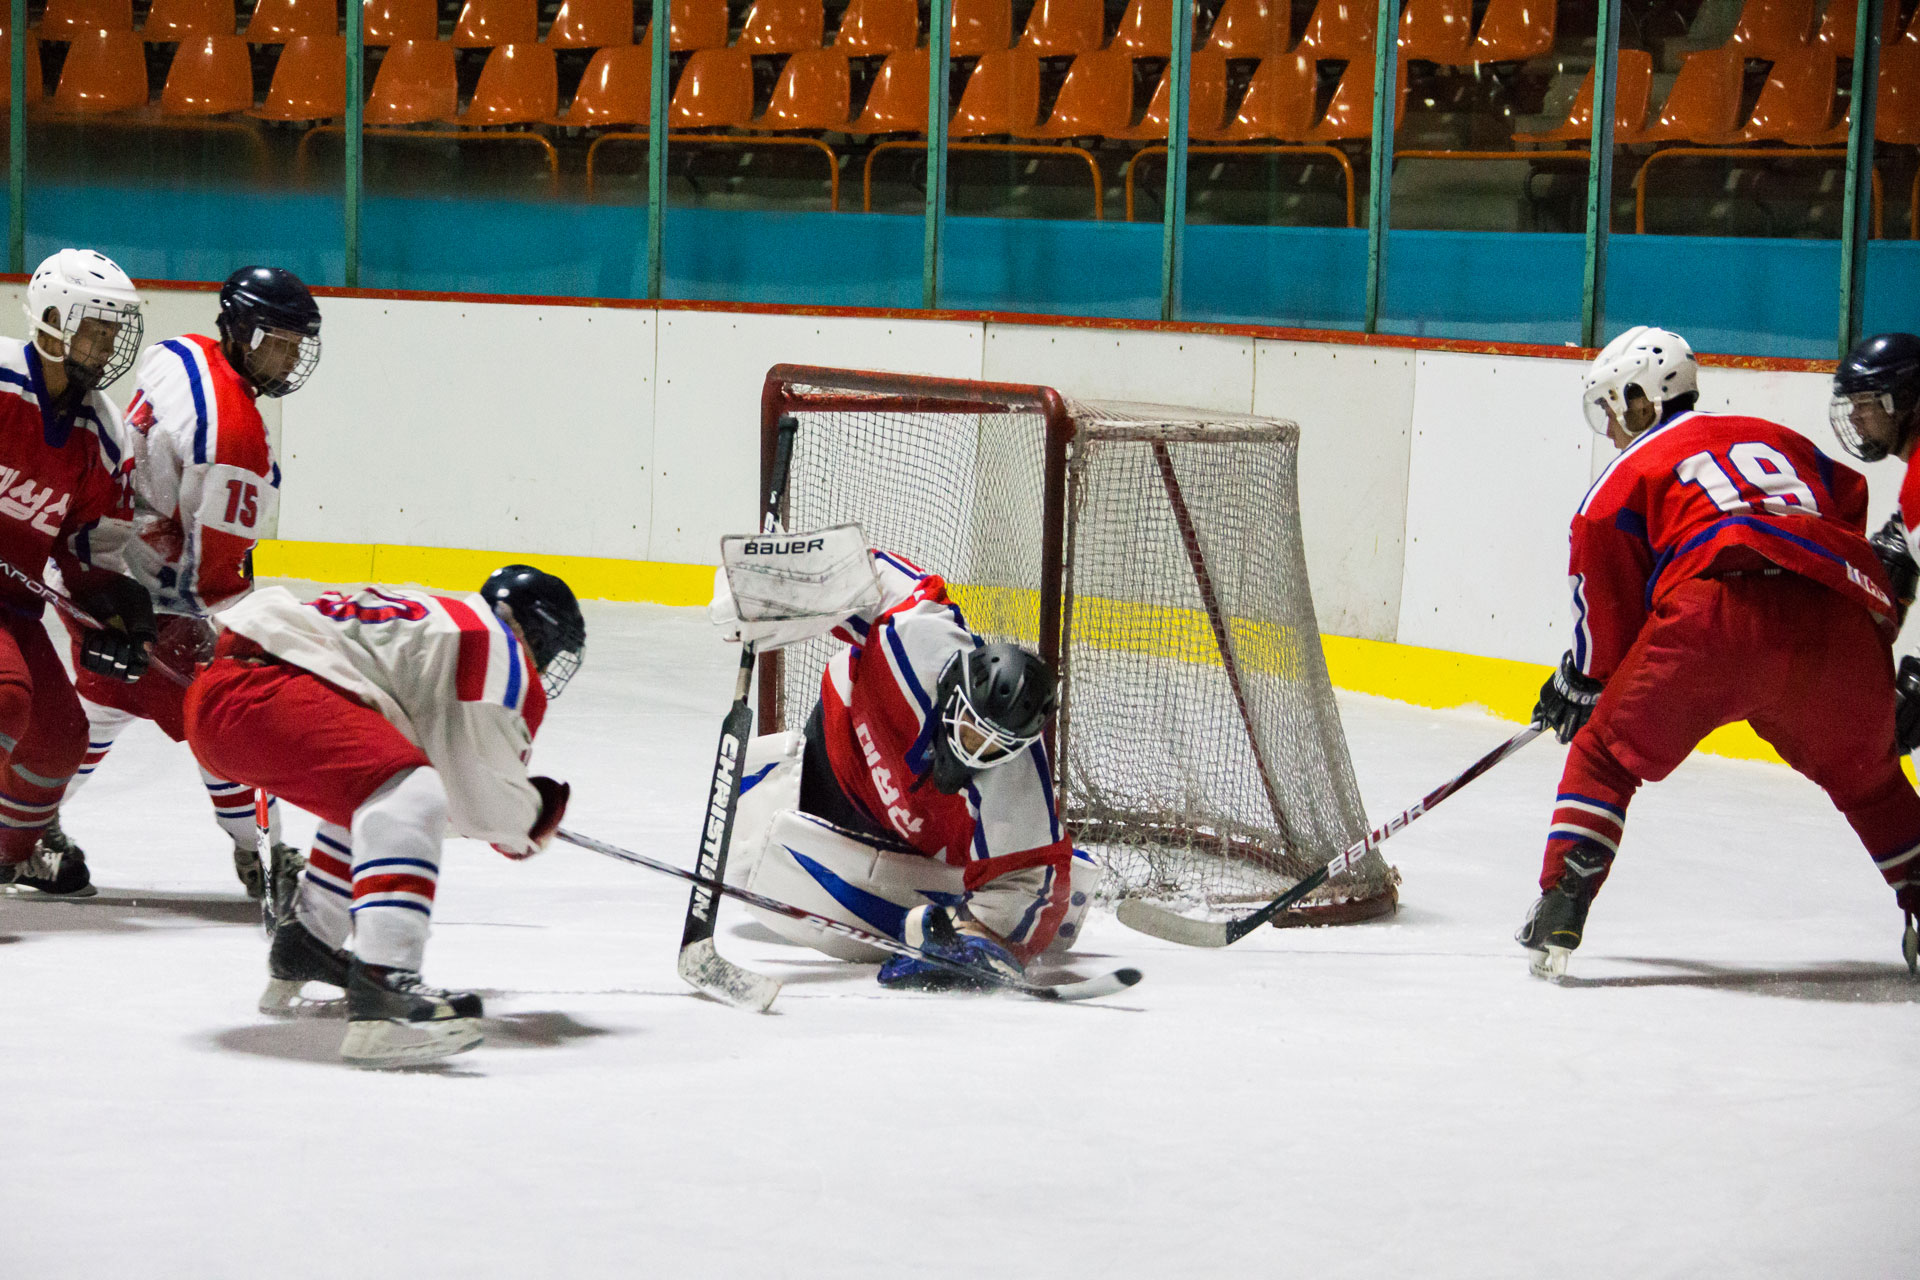 north-korean-goalie-saves-shot.jpg